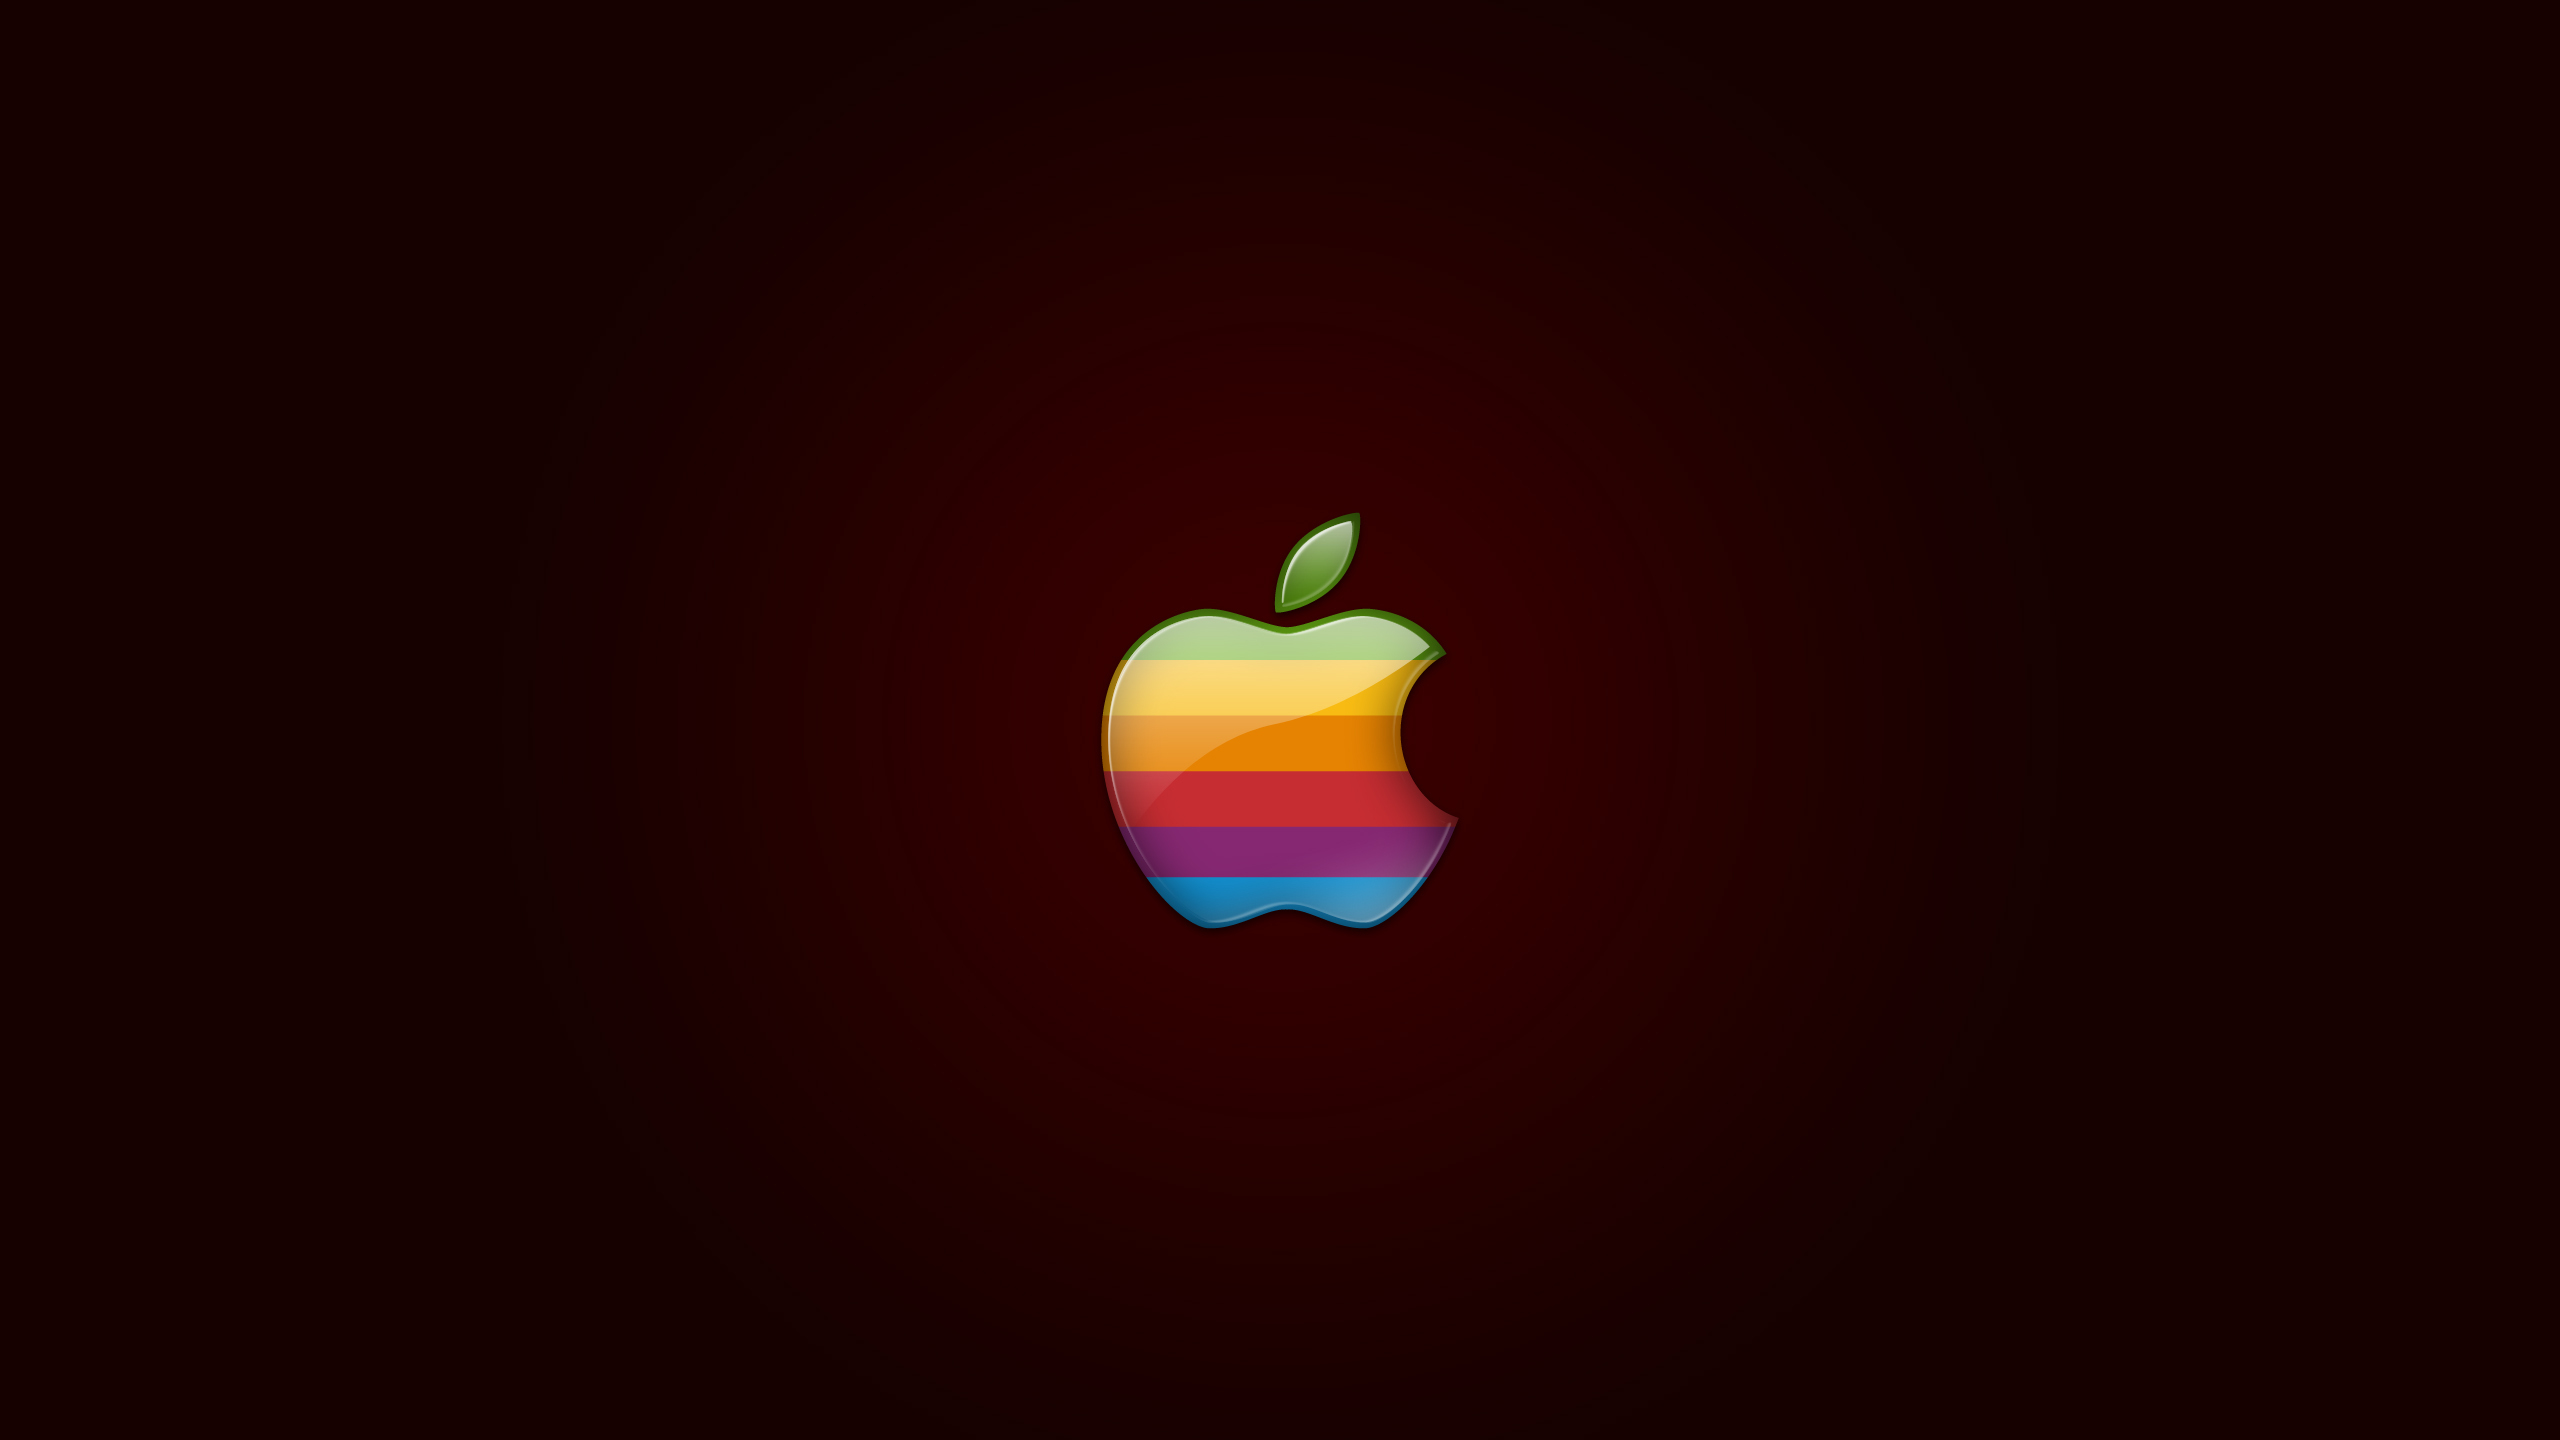 Top Five Wallpaper Apple Logo 4k